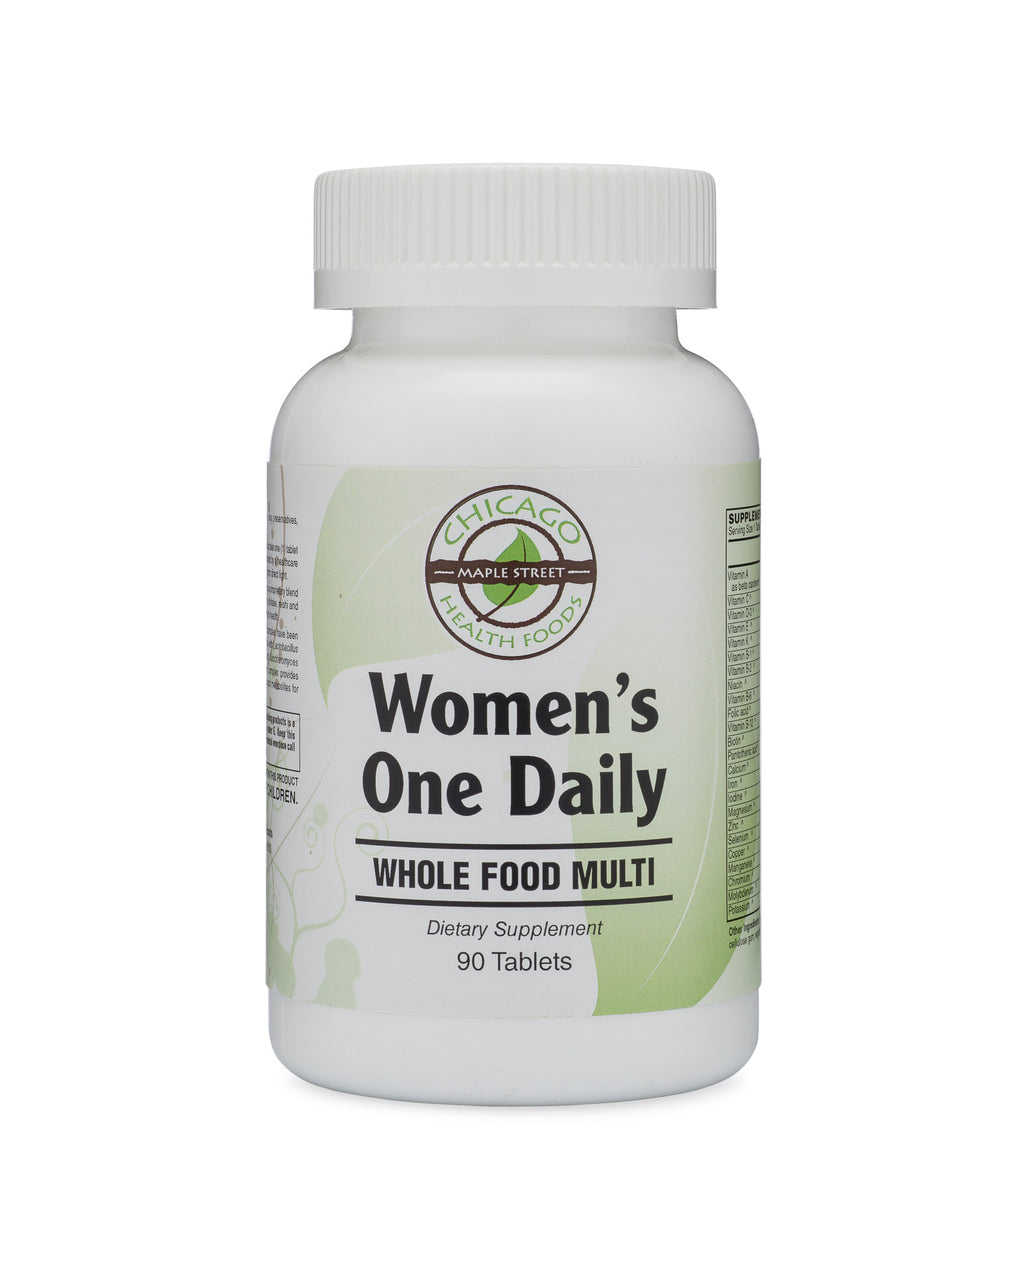 Chicago Health Foods Women's One Daily Multivitamin